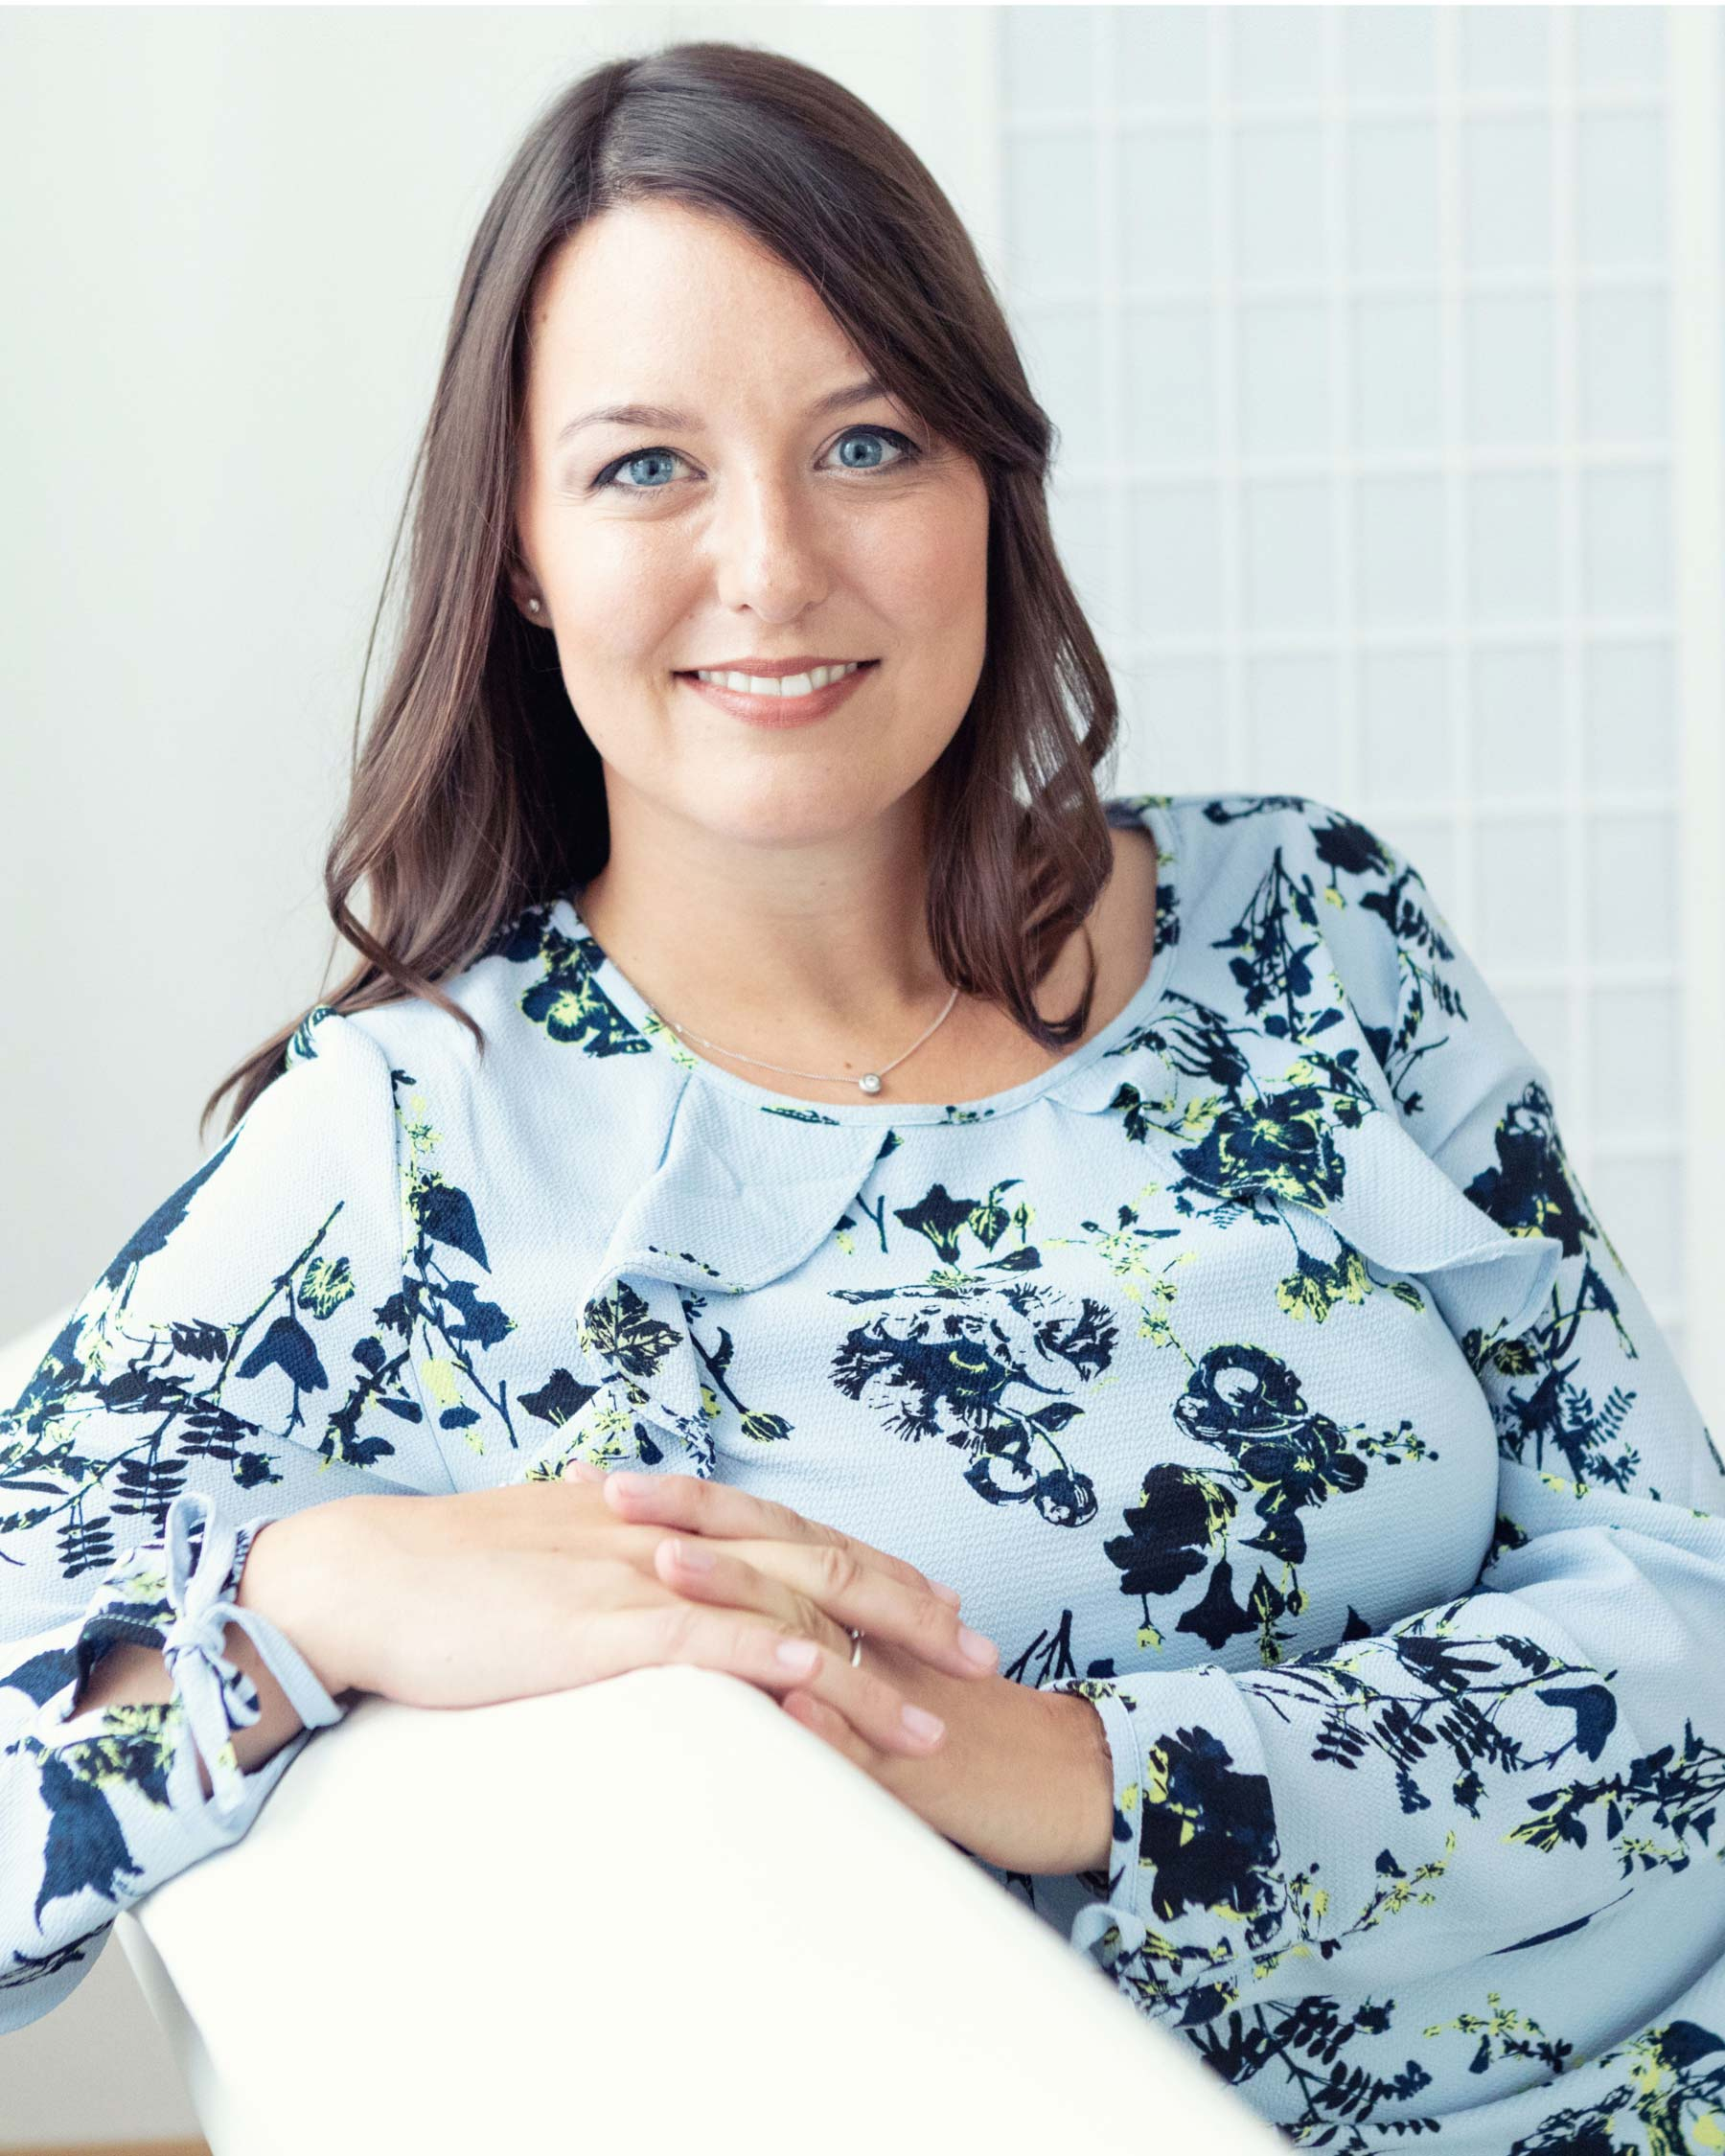 nina_durst_coaching_supervision_mediation_muenchen